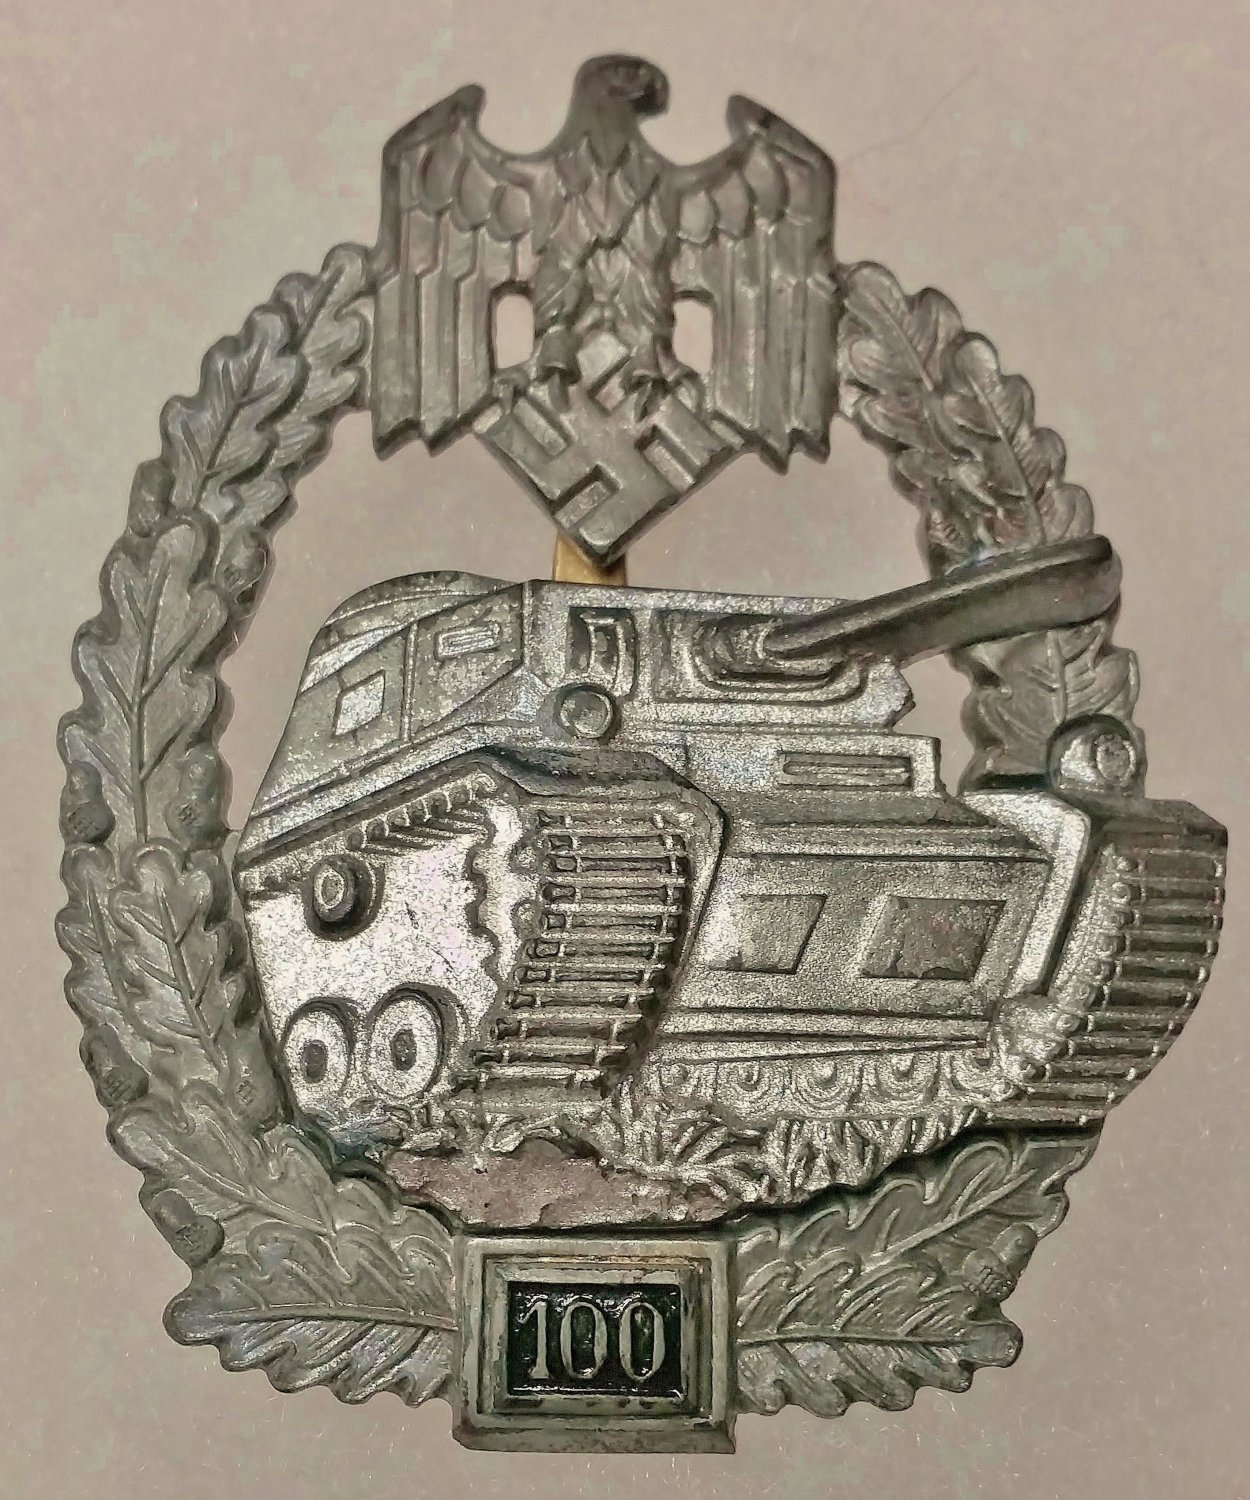 WWII GERMAN PANZER ASSAULT BADGE - SPECIAL GRADE 100